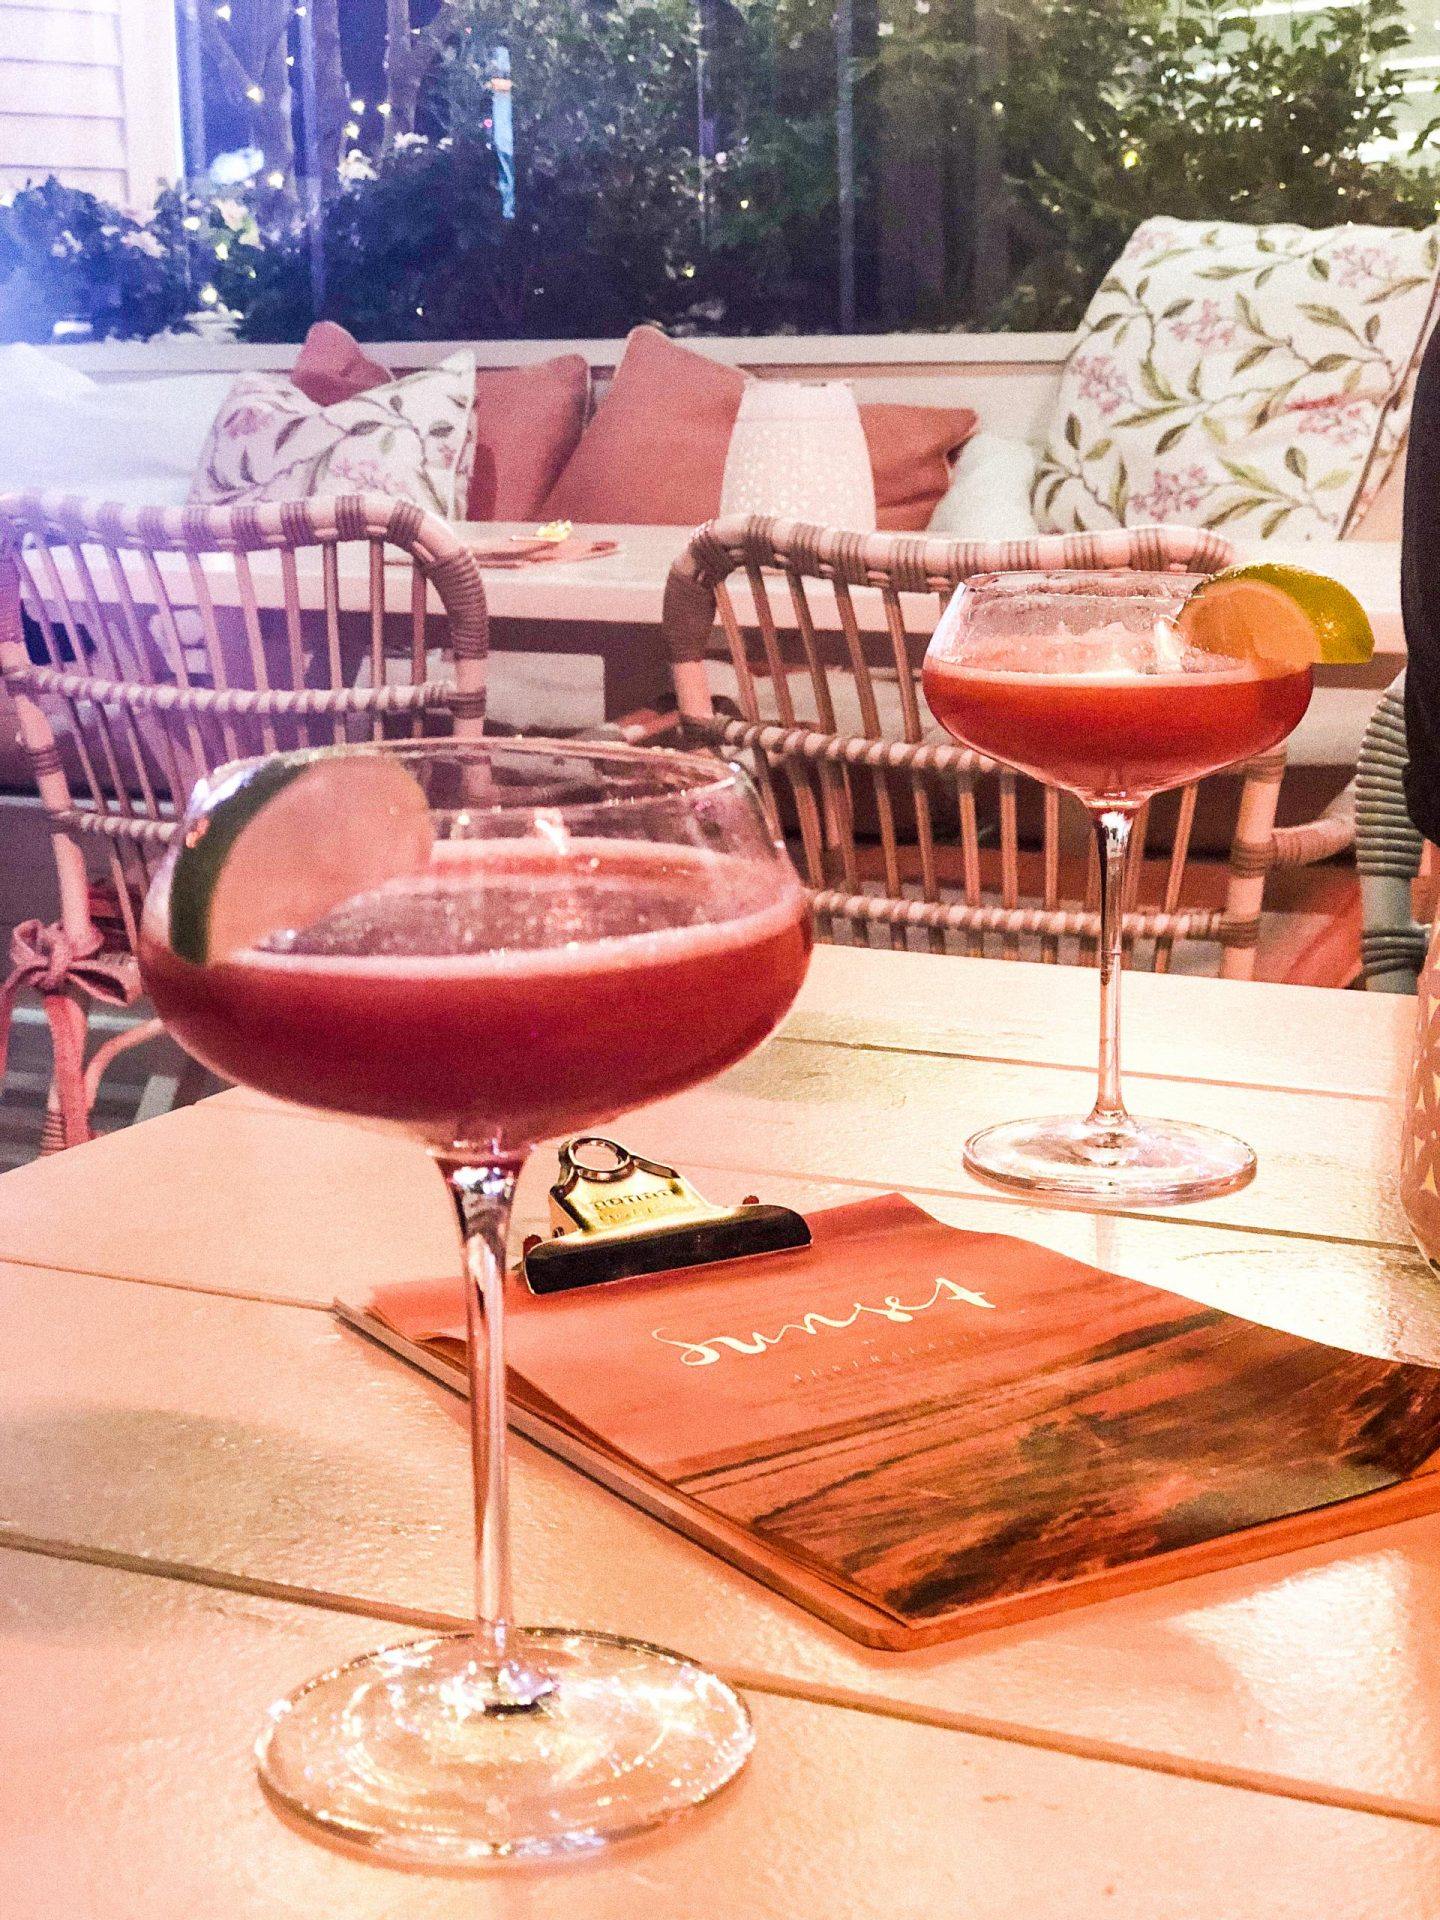 Unique Ideas for Date Night in Manchester, Sunset by Australasia - Rachel Nicole UK Blogger